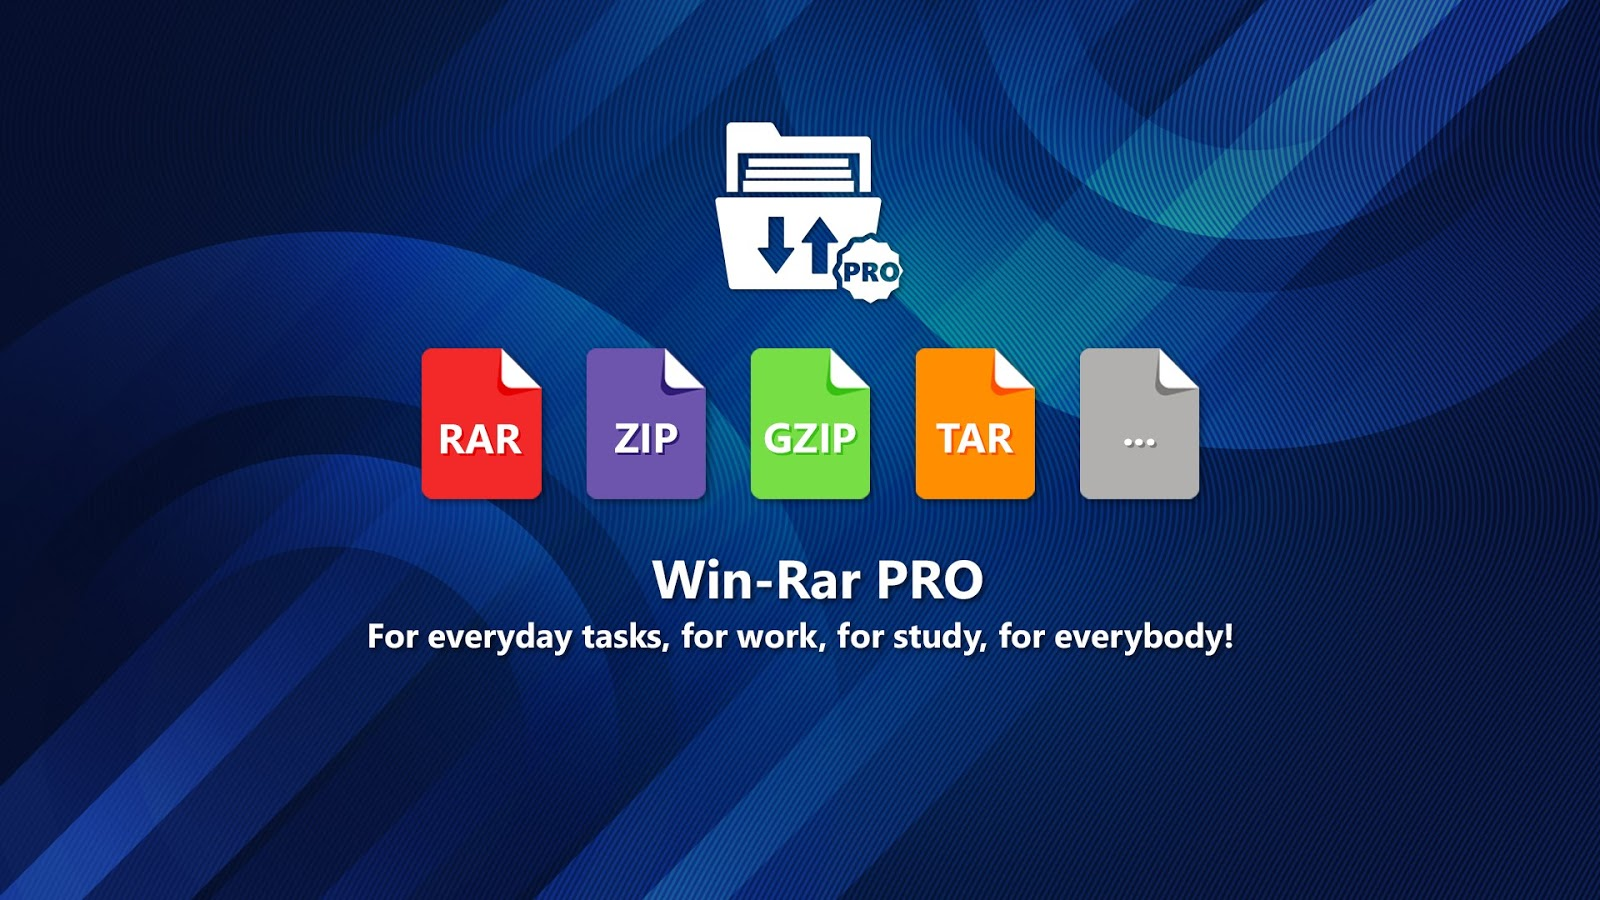 Download-win-rar-pro